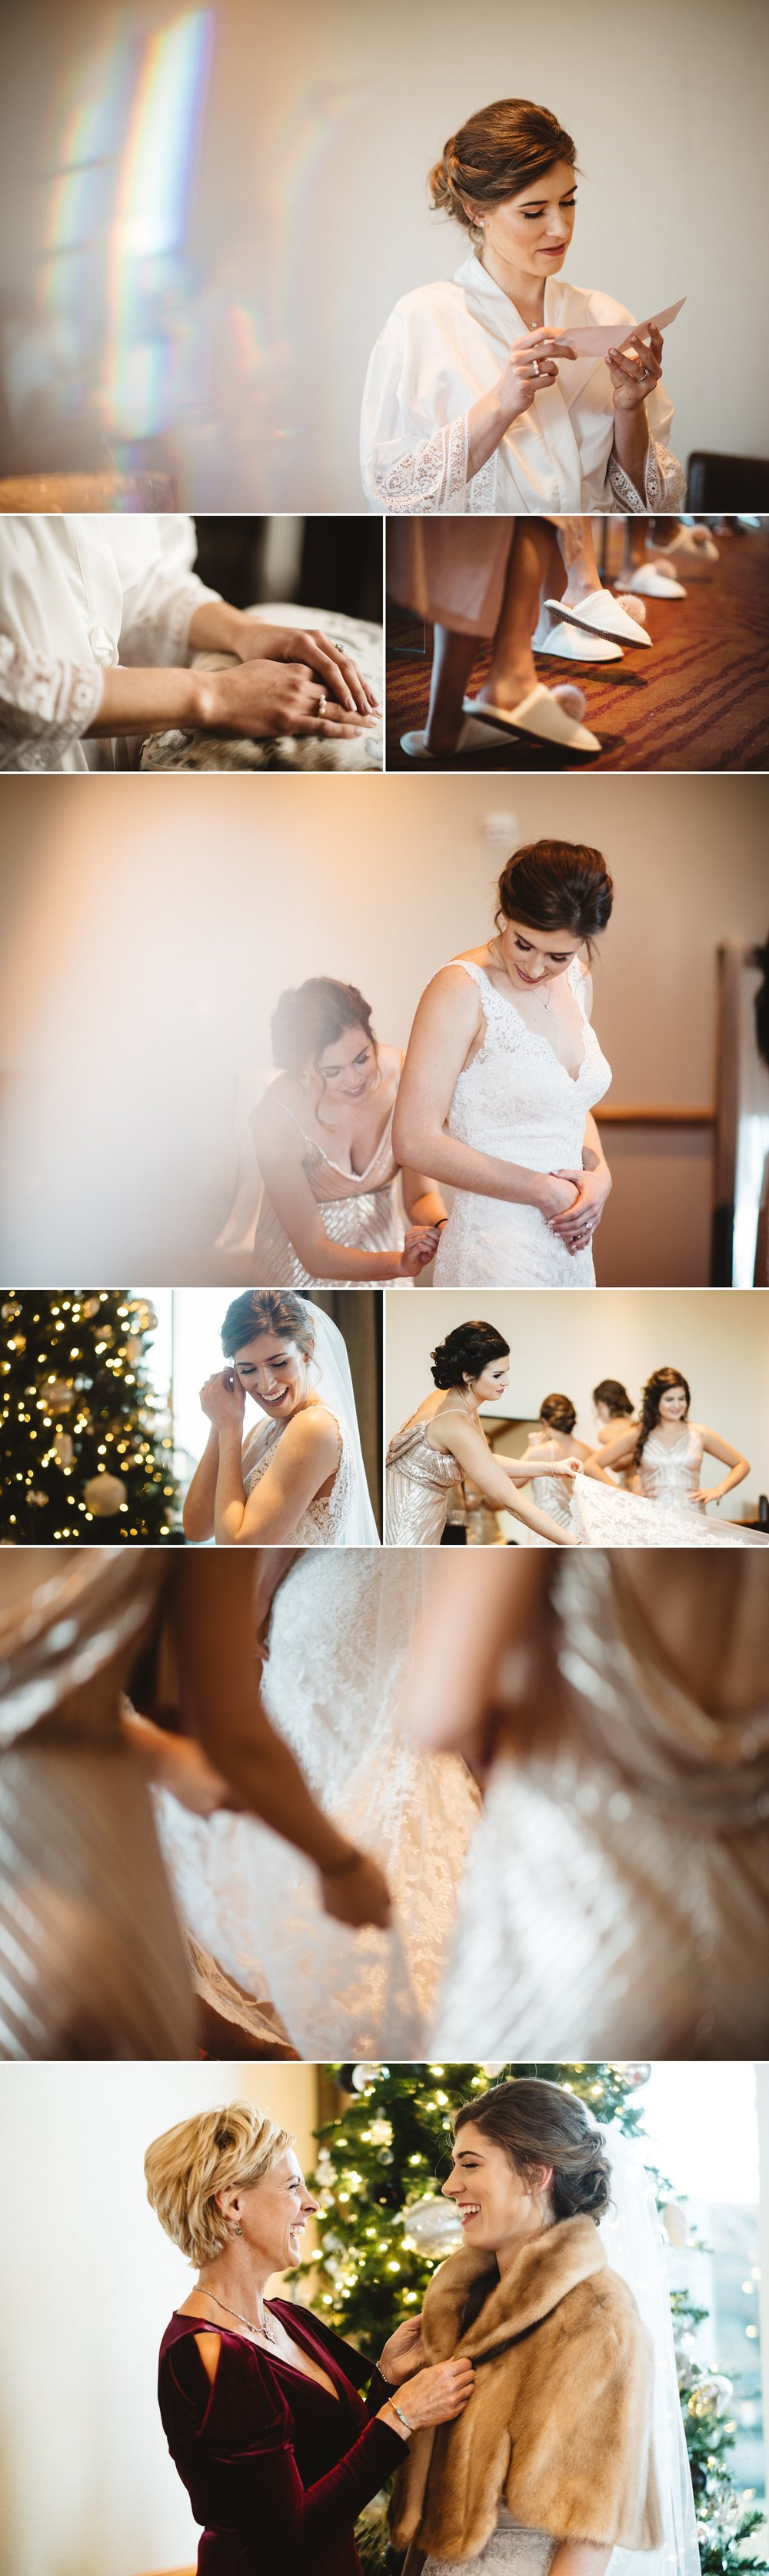 Sarah getting ready with her bridesmaids. I love the candid photo with the bride and her mom!